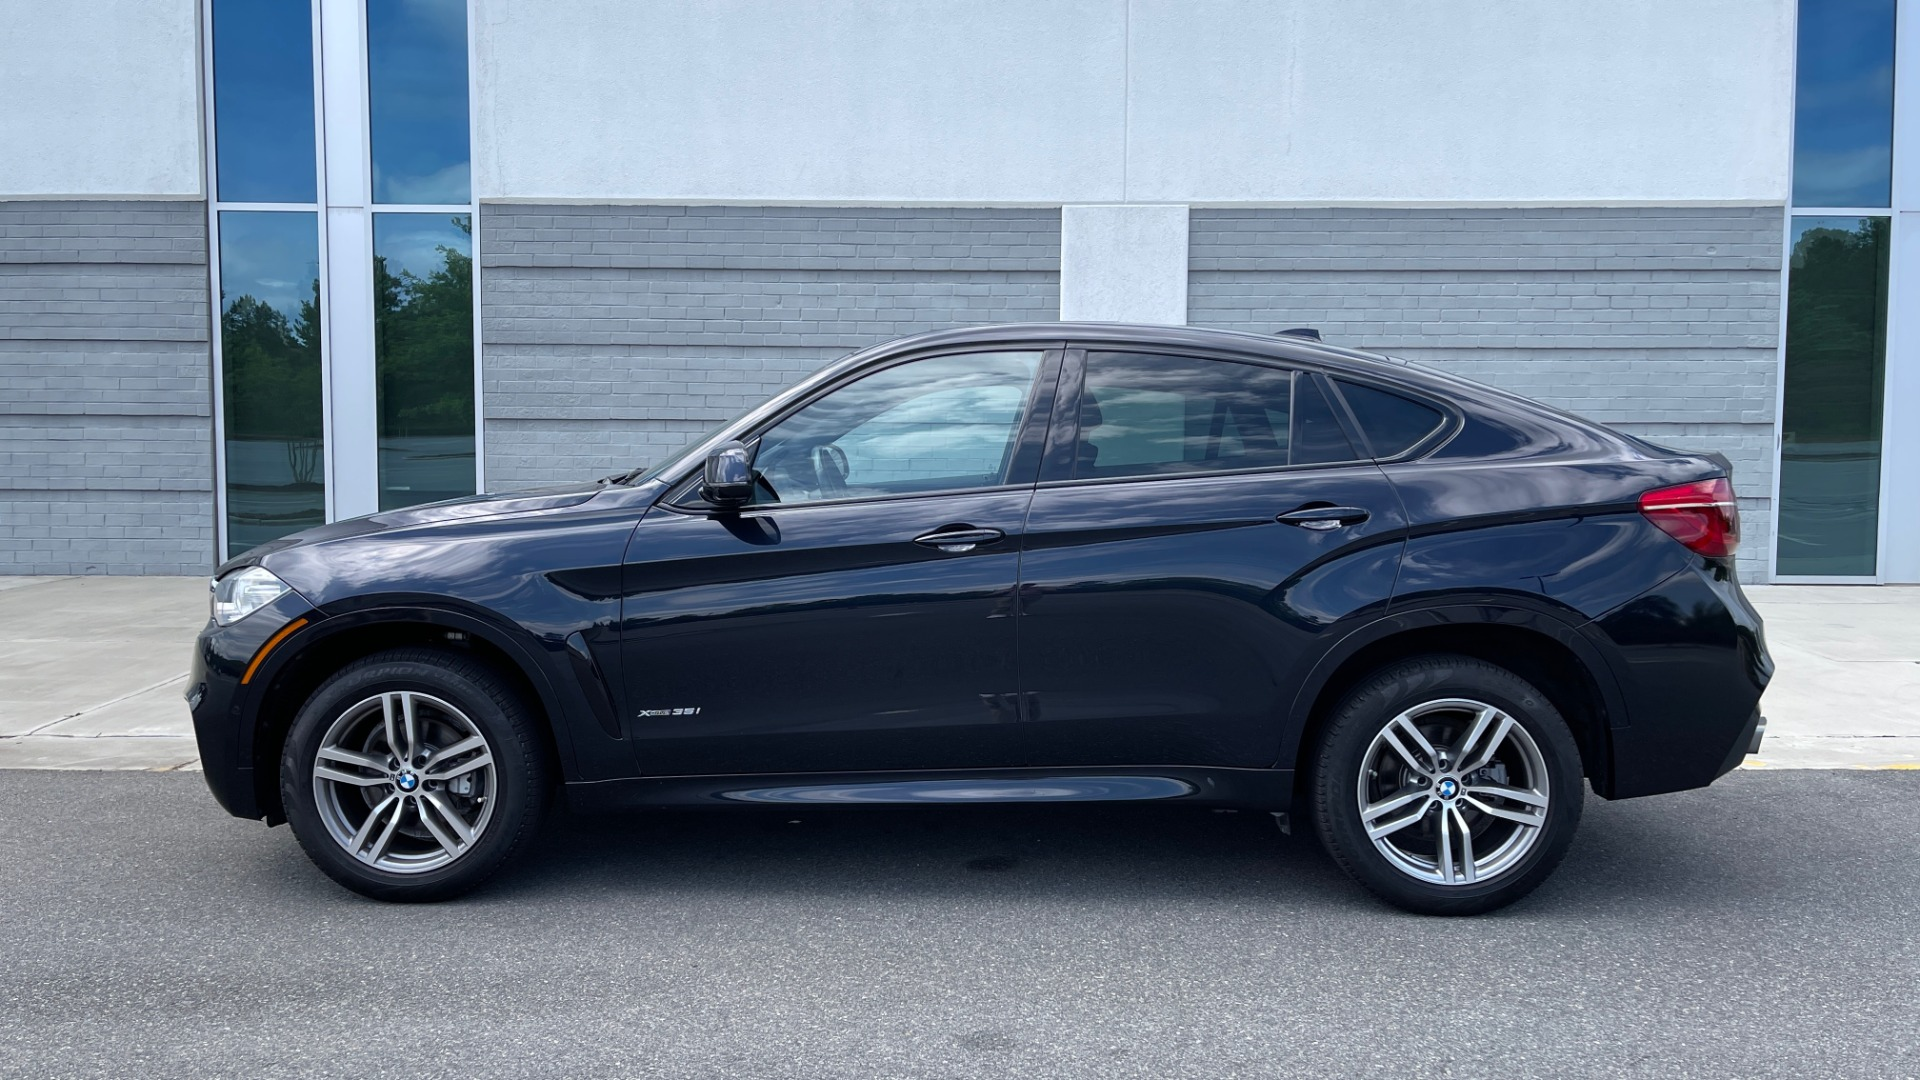 Used 2018 BMW X6 XDRIVE35I M-SPORT / DRVR ASST / PRK ASST / H/K SND / APPLE / WIRELESS CHARG for sale $51,995 at Formula Imports in Charlotte NC 28227 4